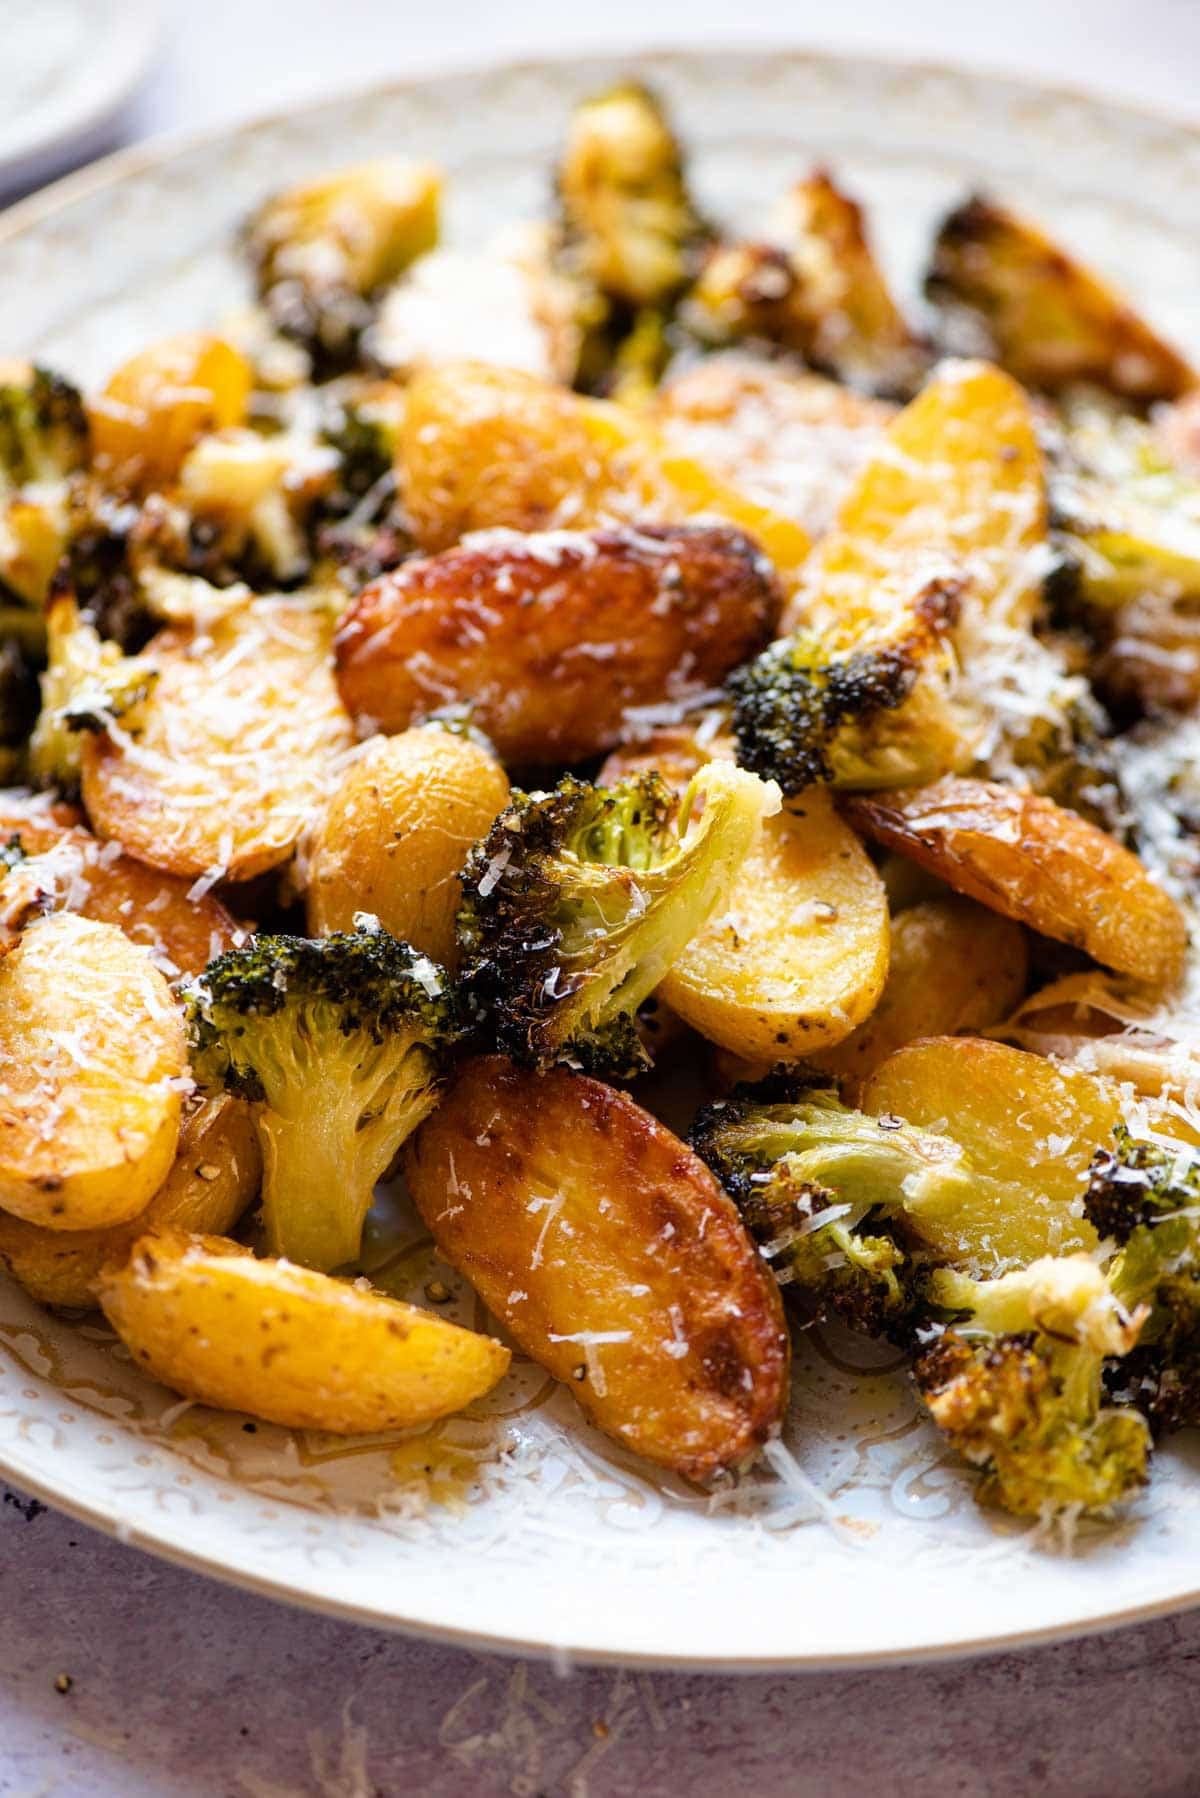 A close up of roasted potatoes and broccoli with parmesan